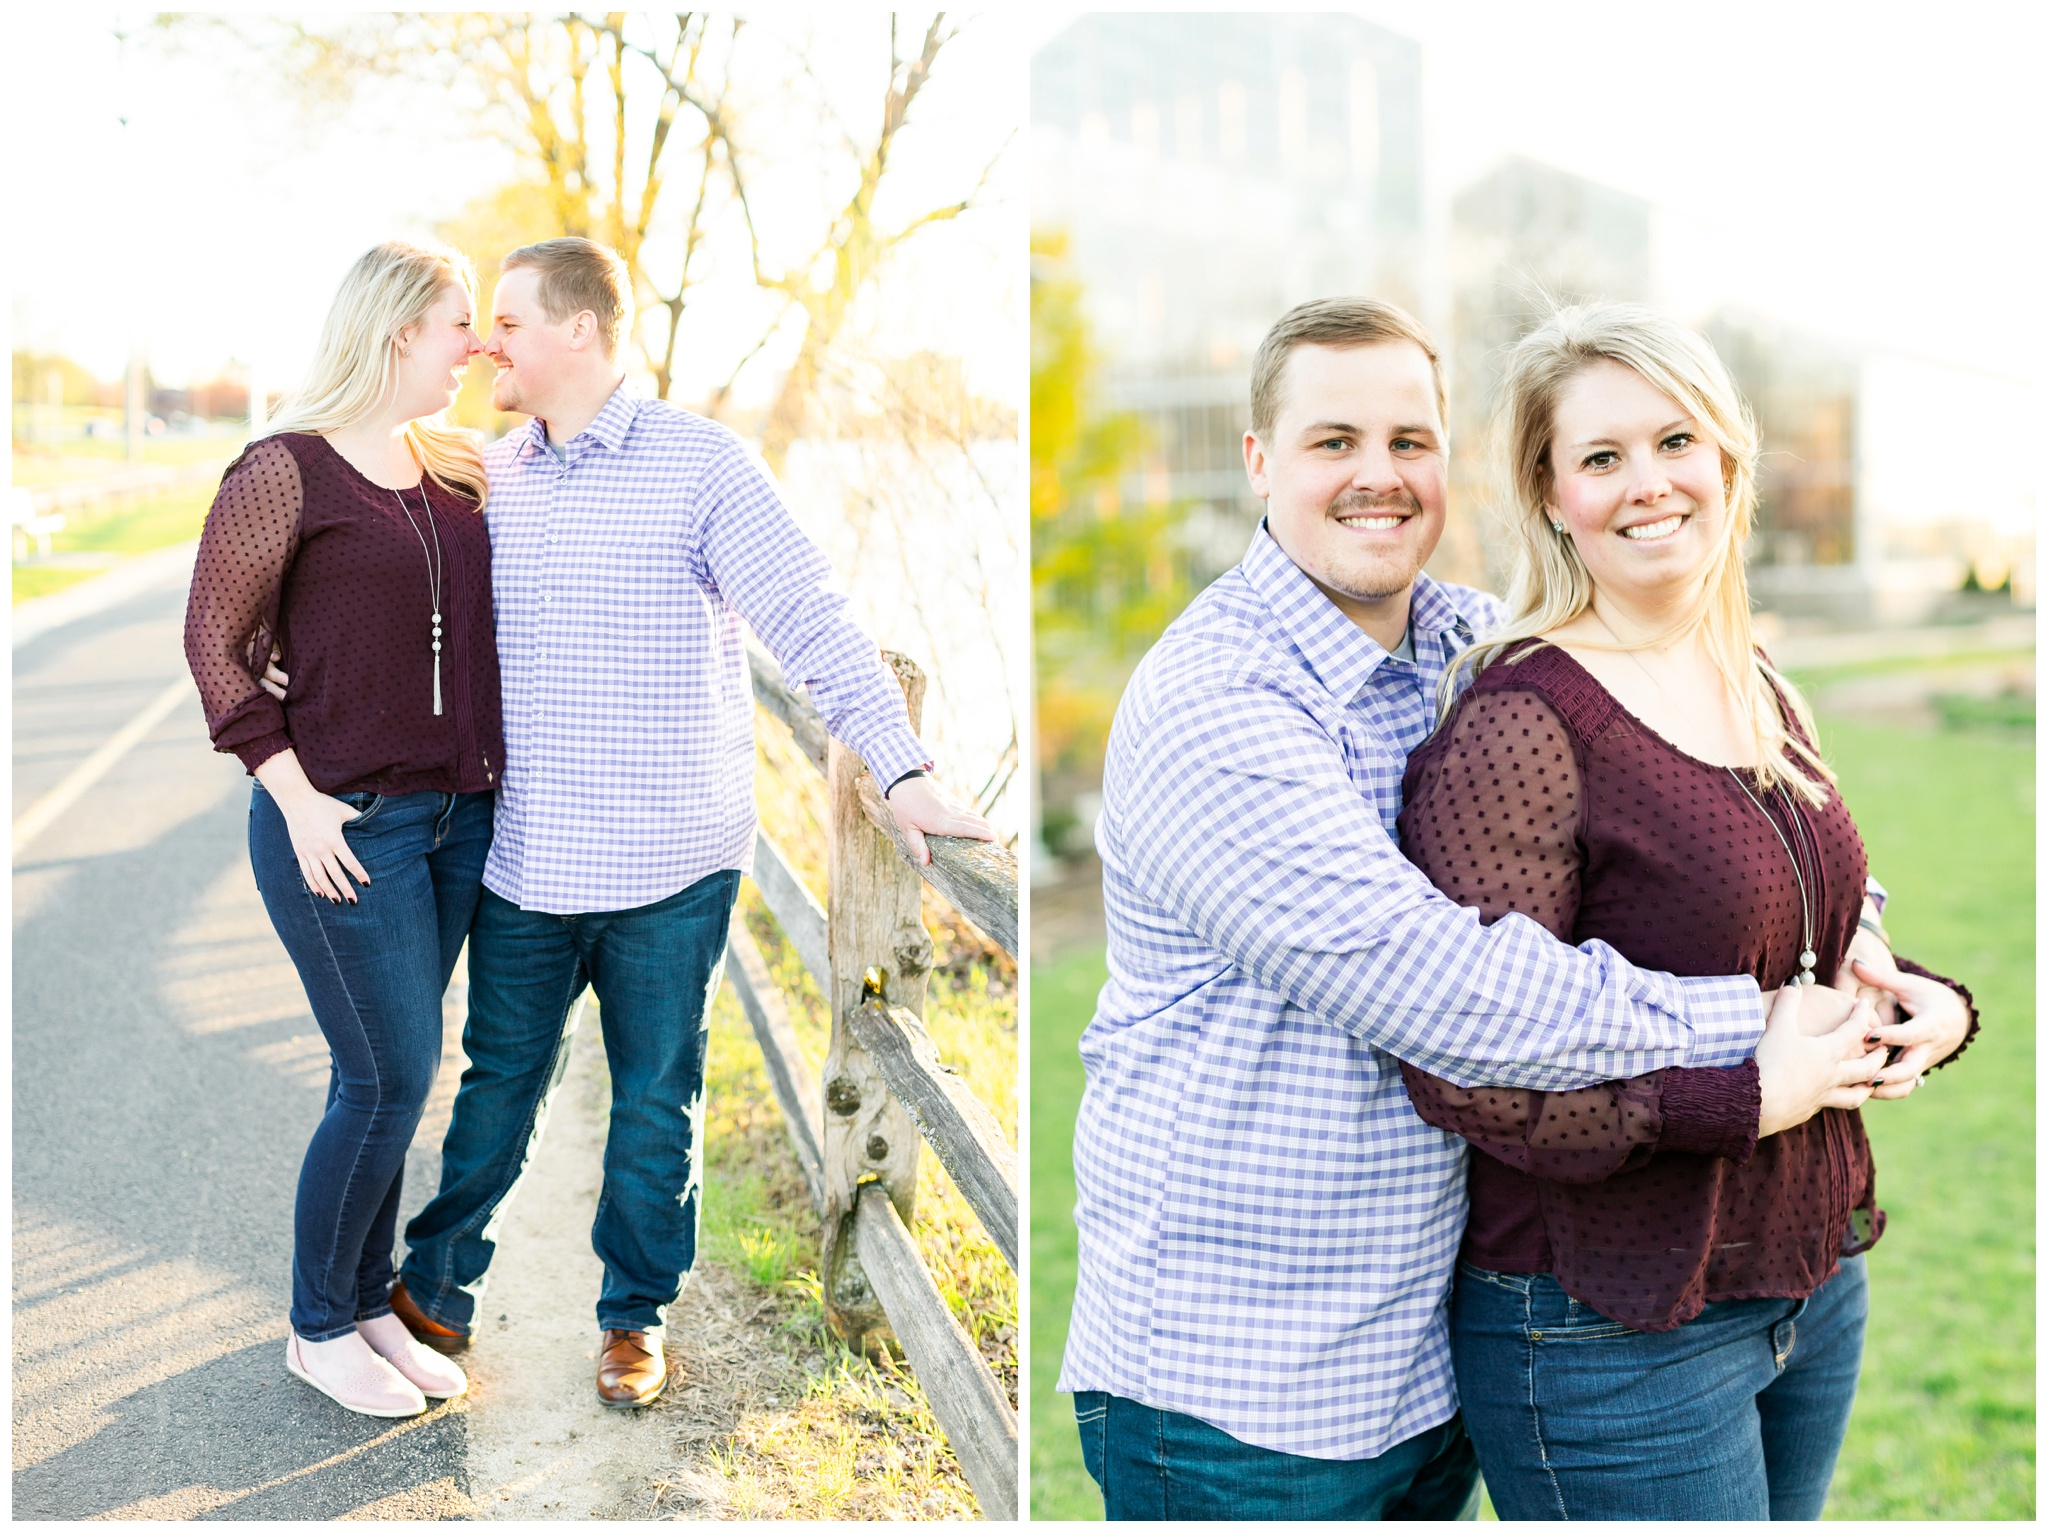 nicholas_conservatory_engagement_session_rockford_illinois_caynay_photo_2998.jpg